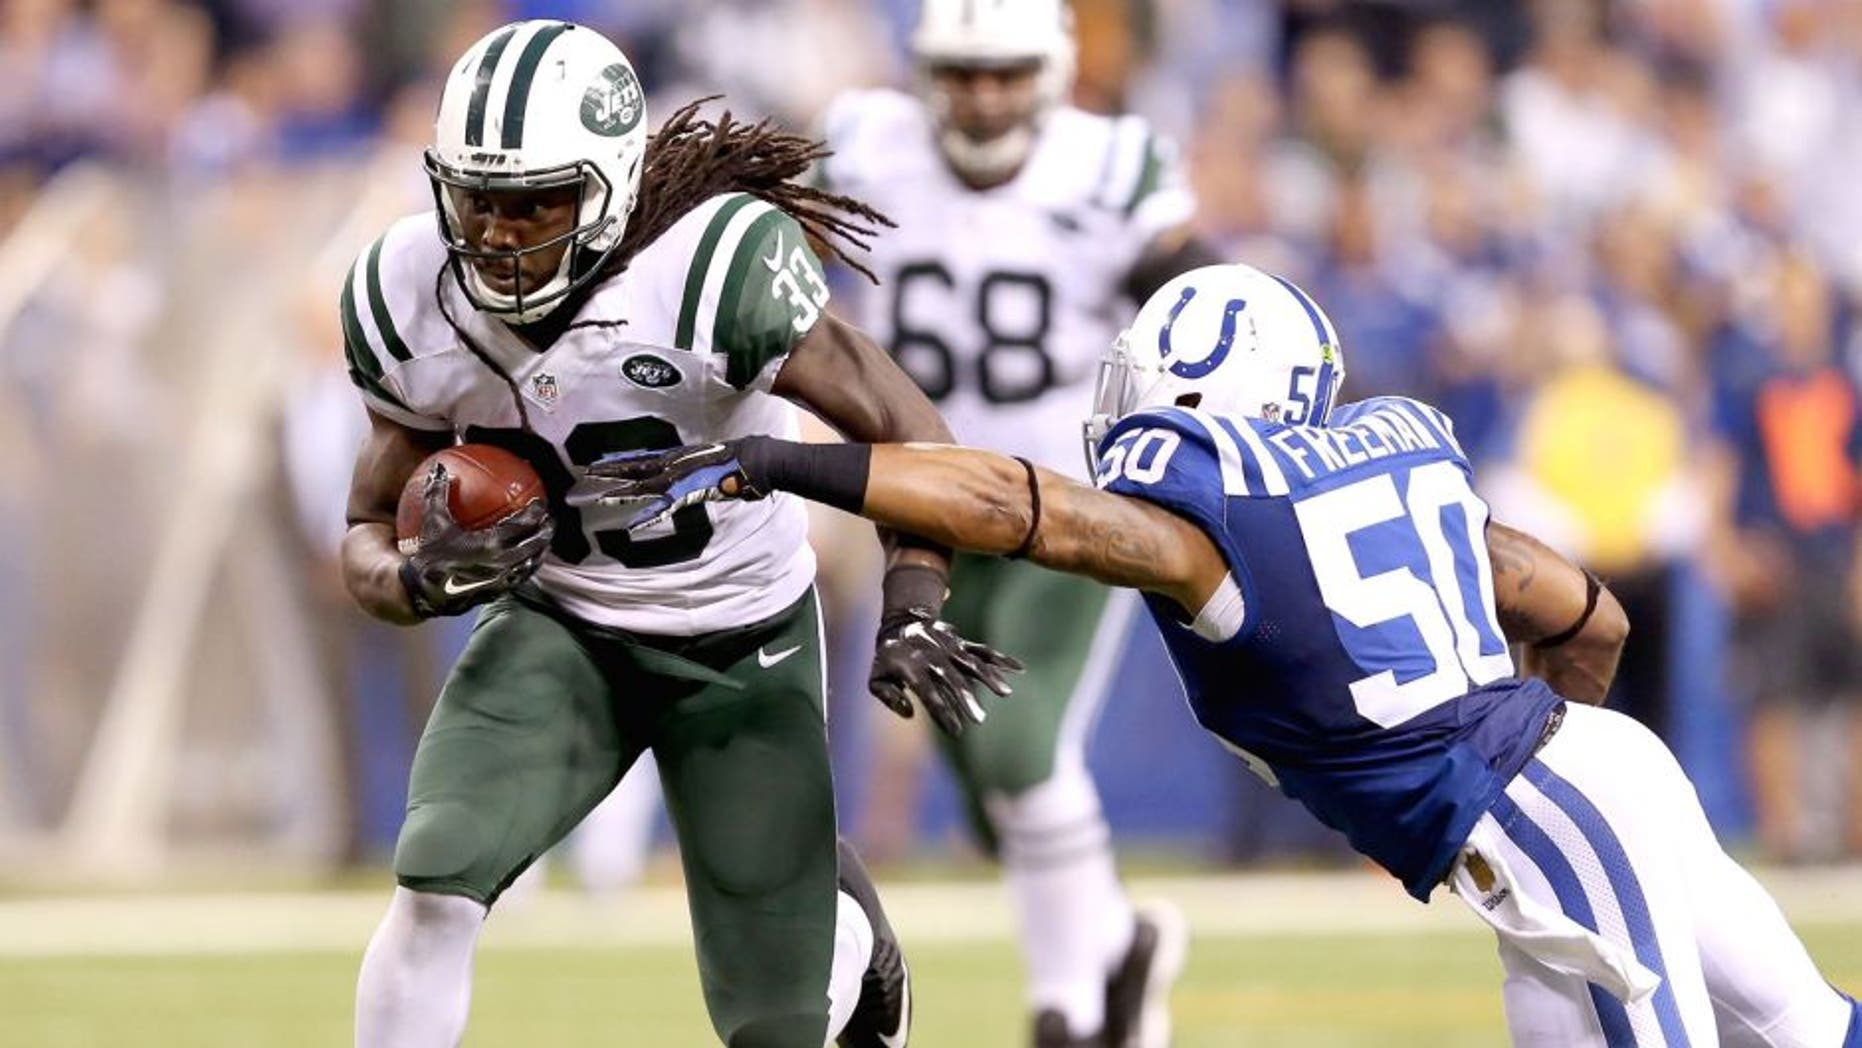 INDIANAPOLIS, IN - SEPTEMBER 21: Chris Ivory #33 of the New York Jets runs the ball during the game against the Indianapolis Colts at Lucas Oil Stadium on September 21, 2015 in Indianapolis, Indiana. (Photo by Andy Lyons/Getty Images)